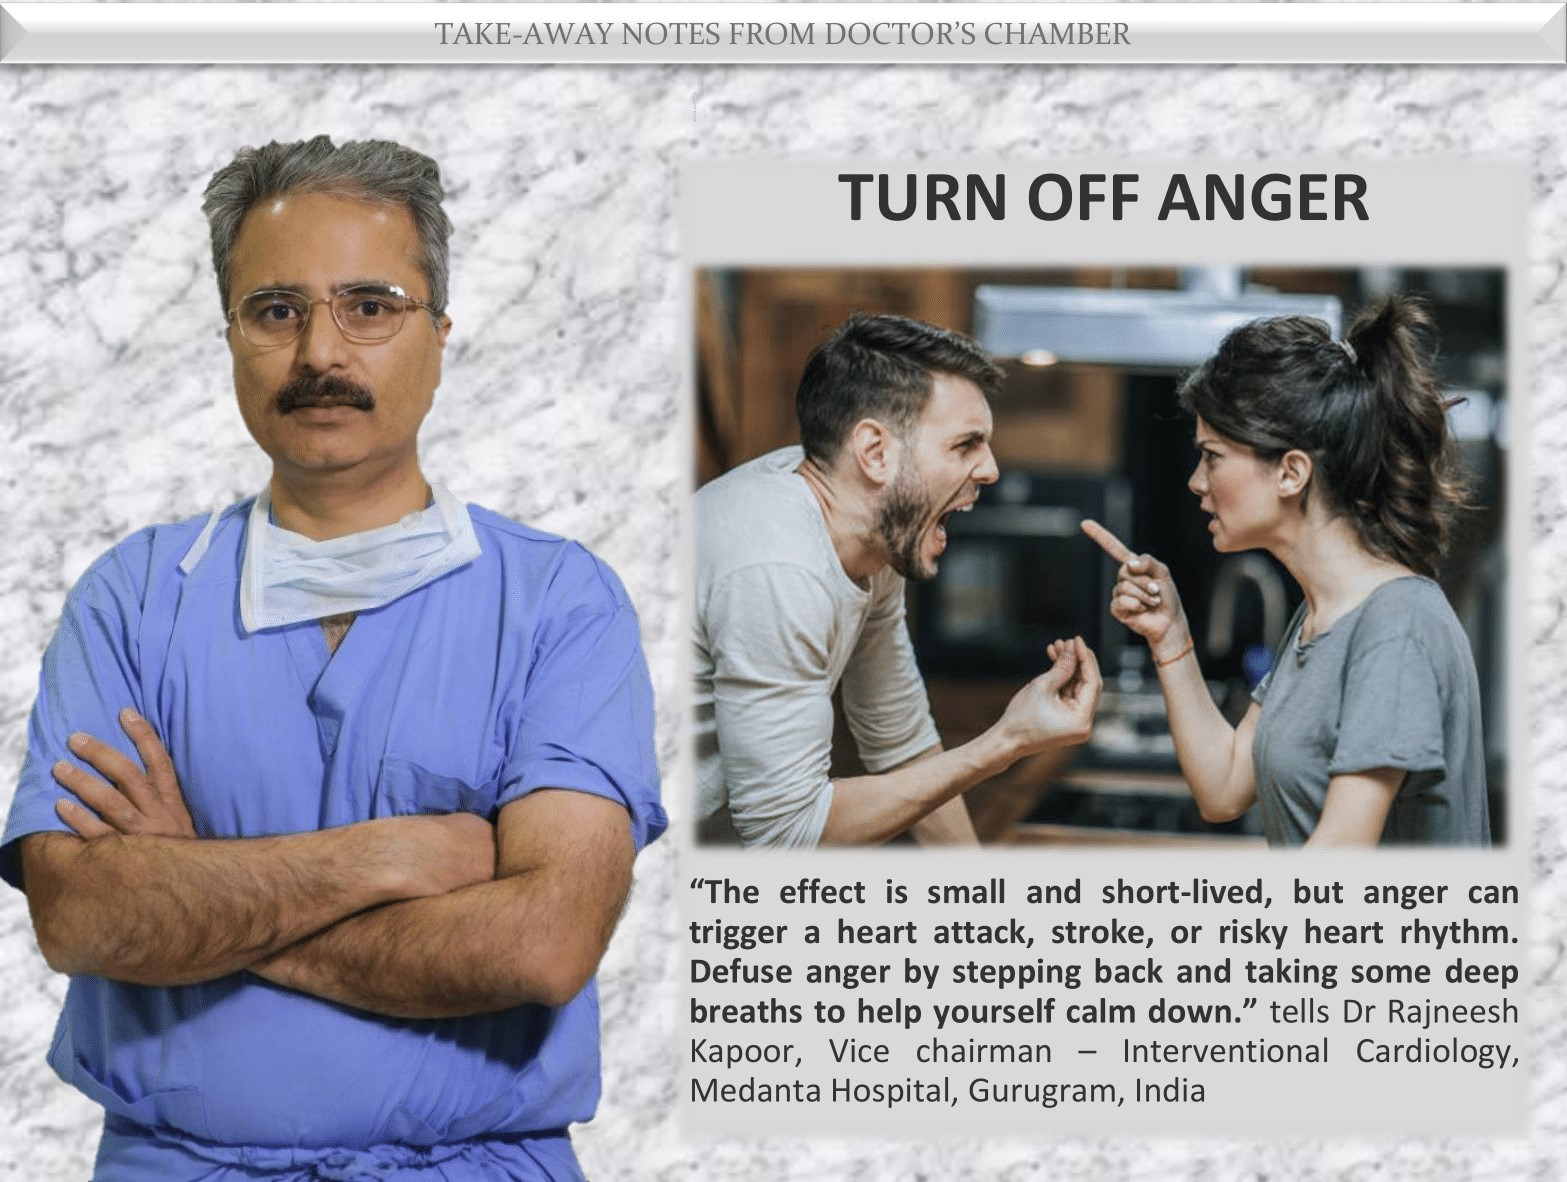 Heart attack Risk with Anger Outburst - Study